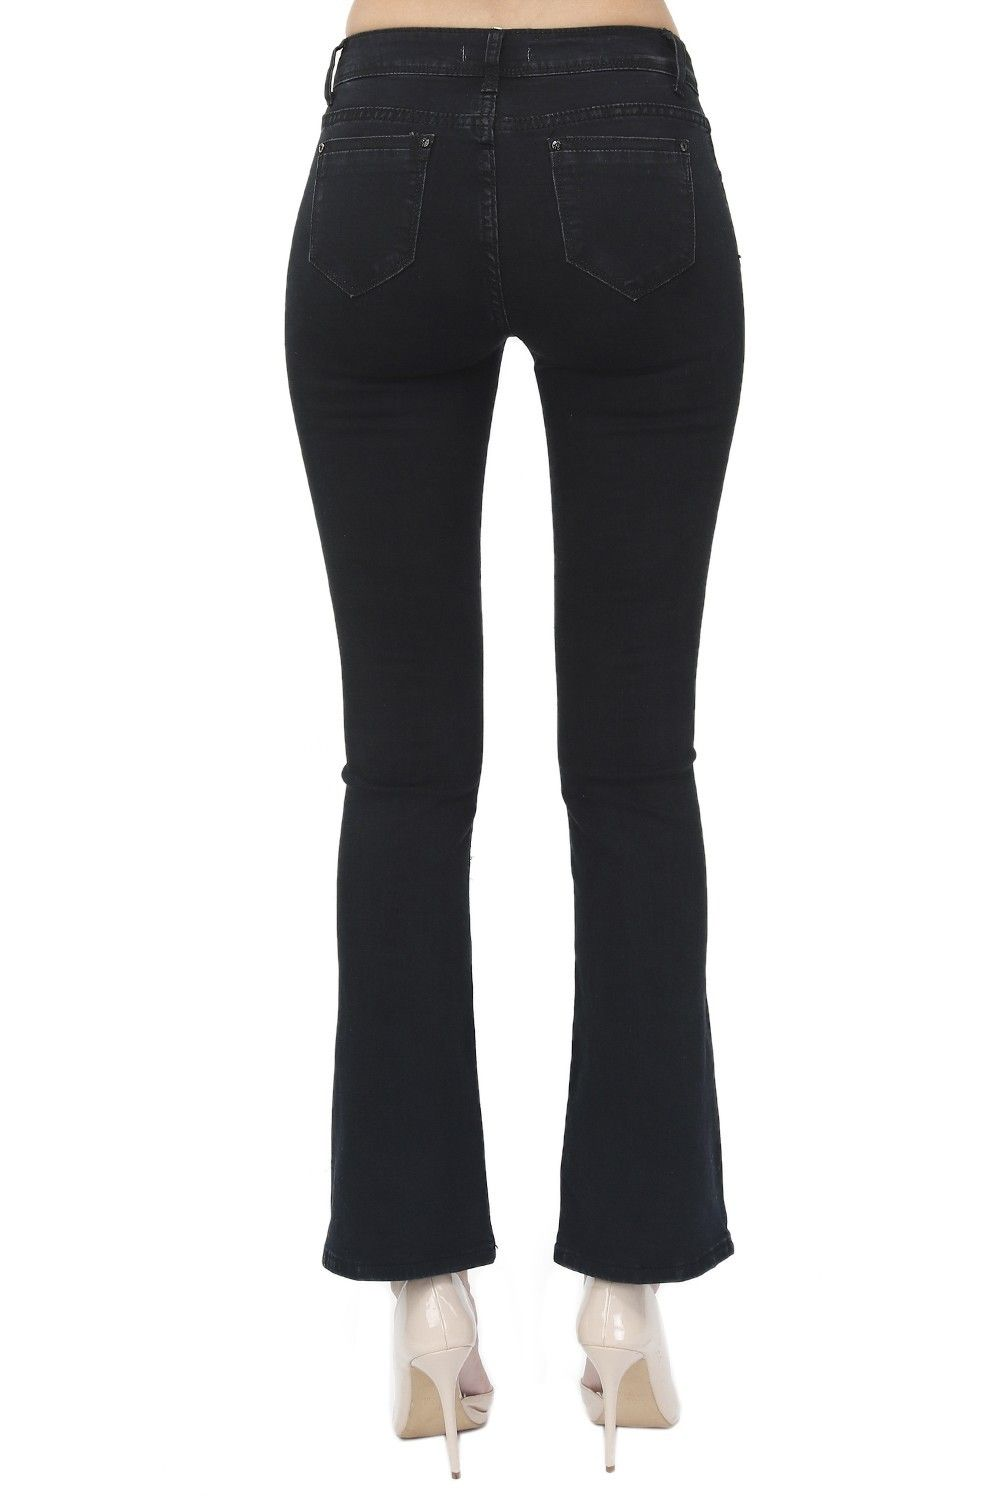 Assuili Wide-legged Jeans in Black